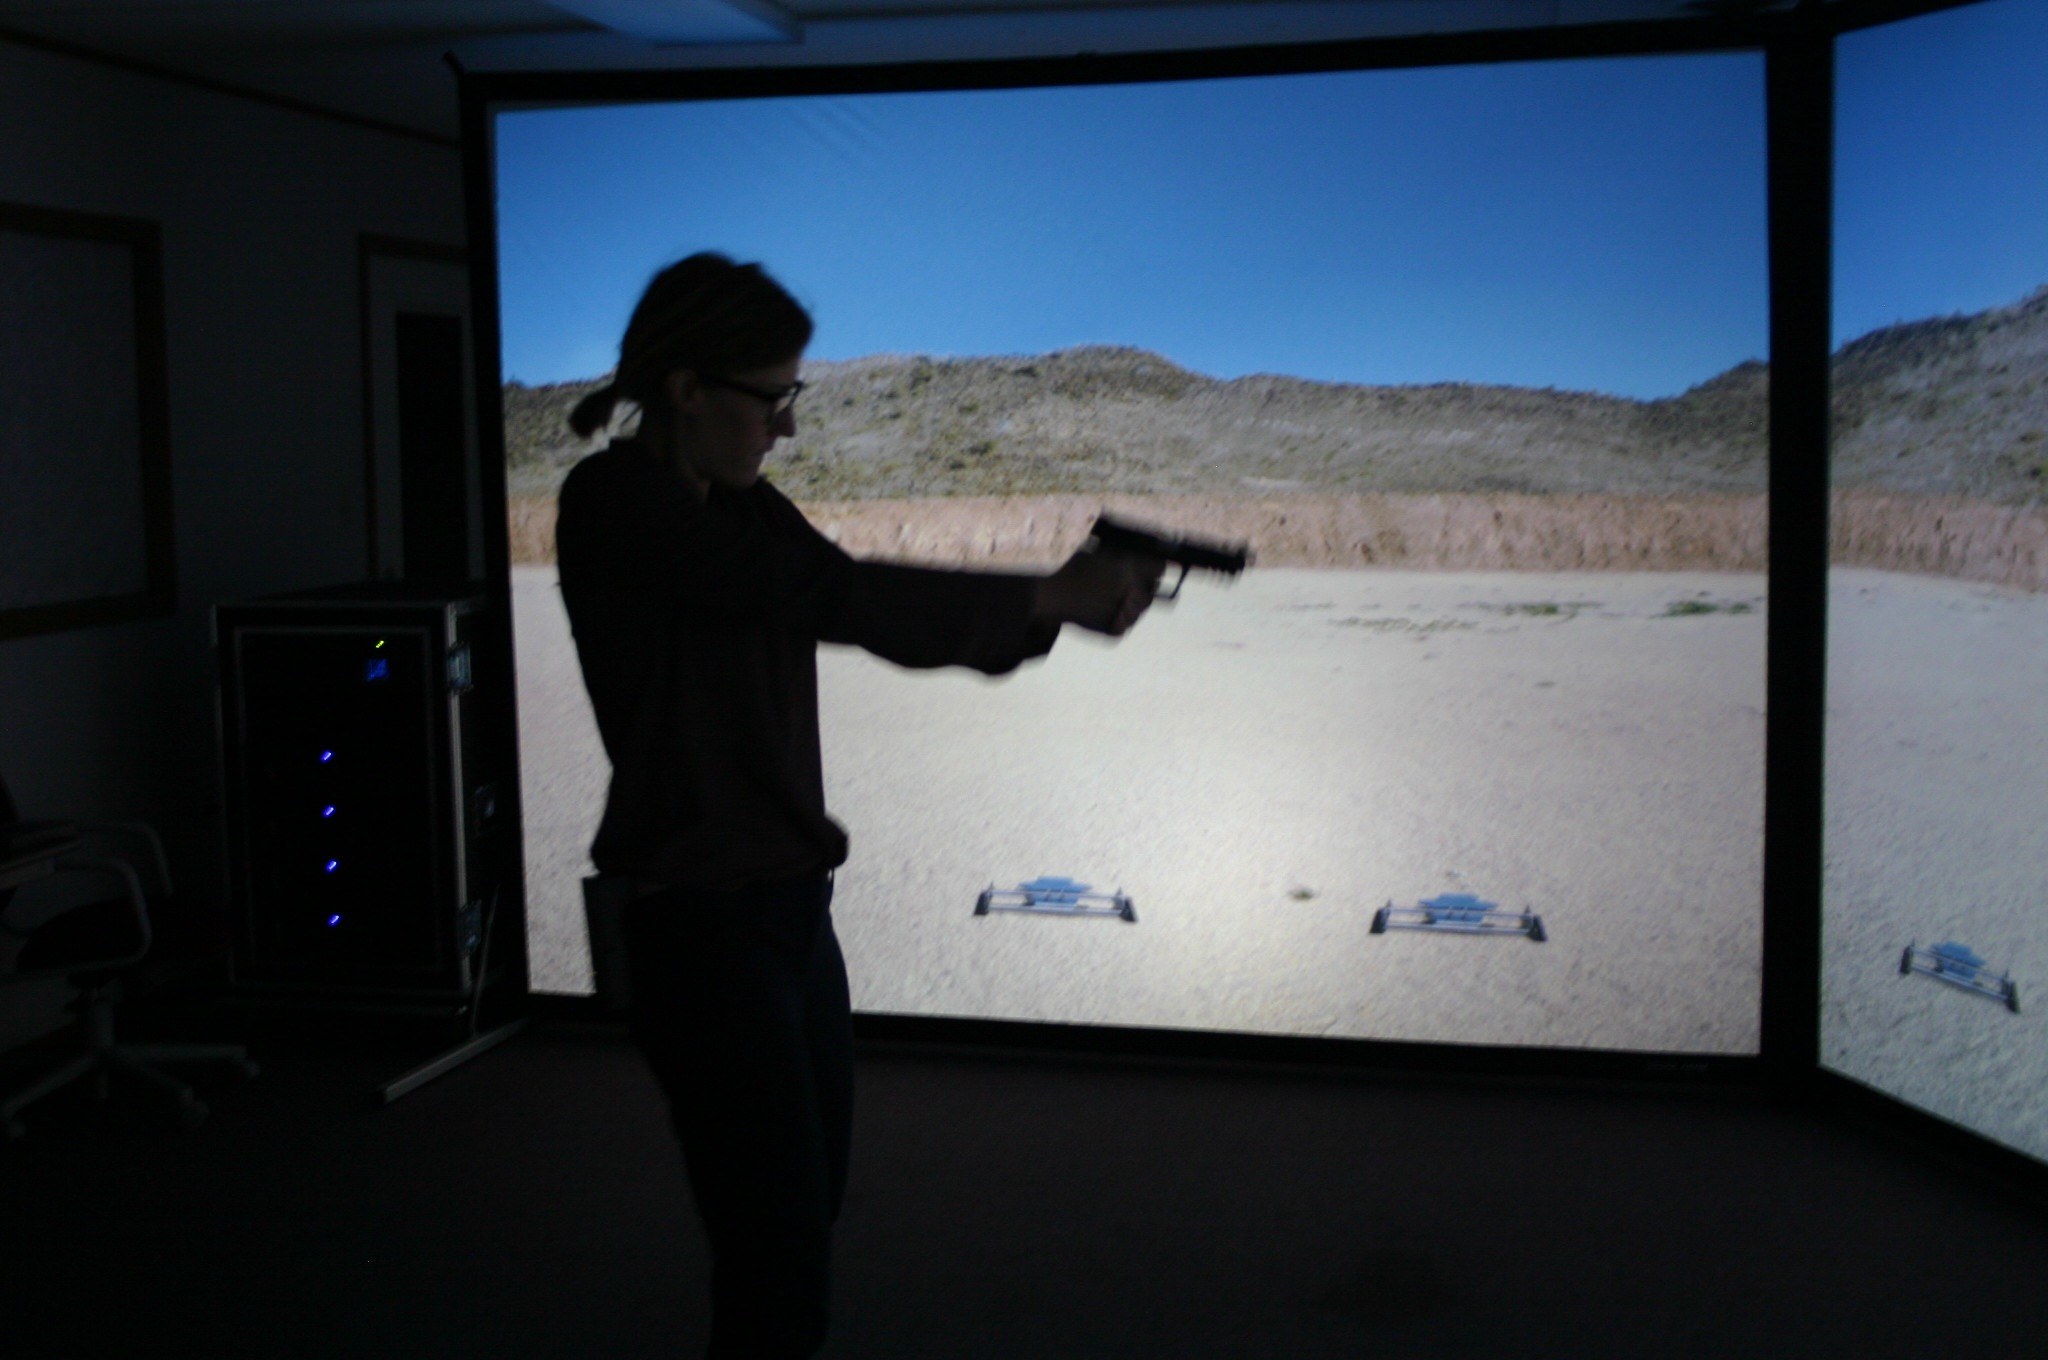 A participant uses the VIRTRA trainer which project images on a 180 degree screen.